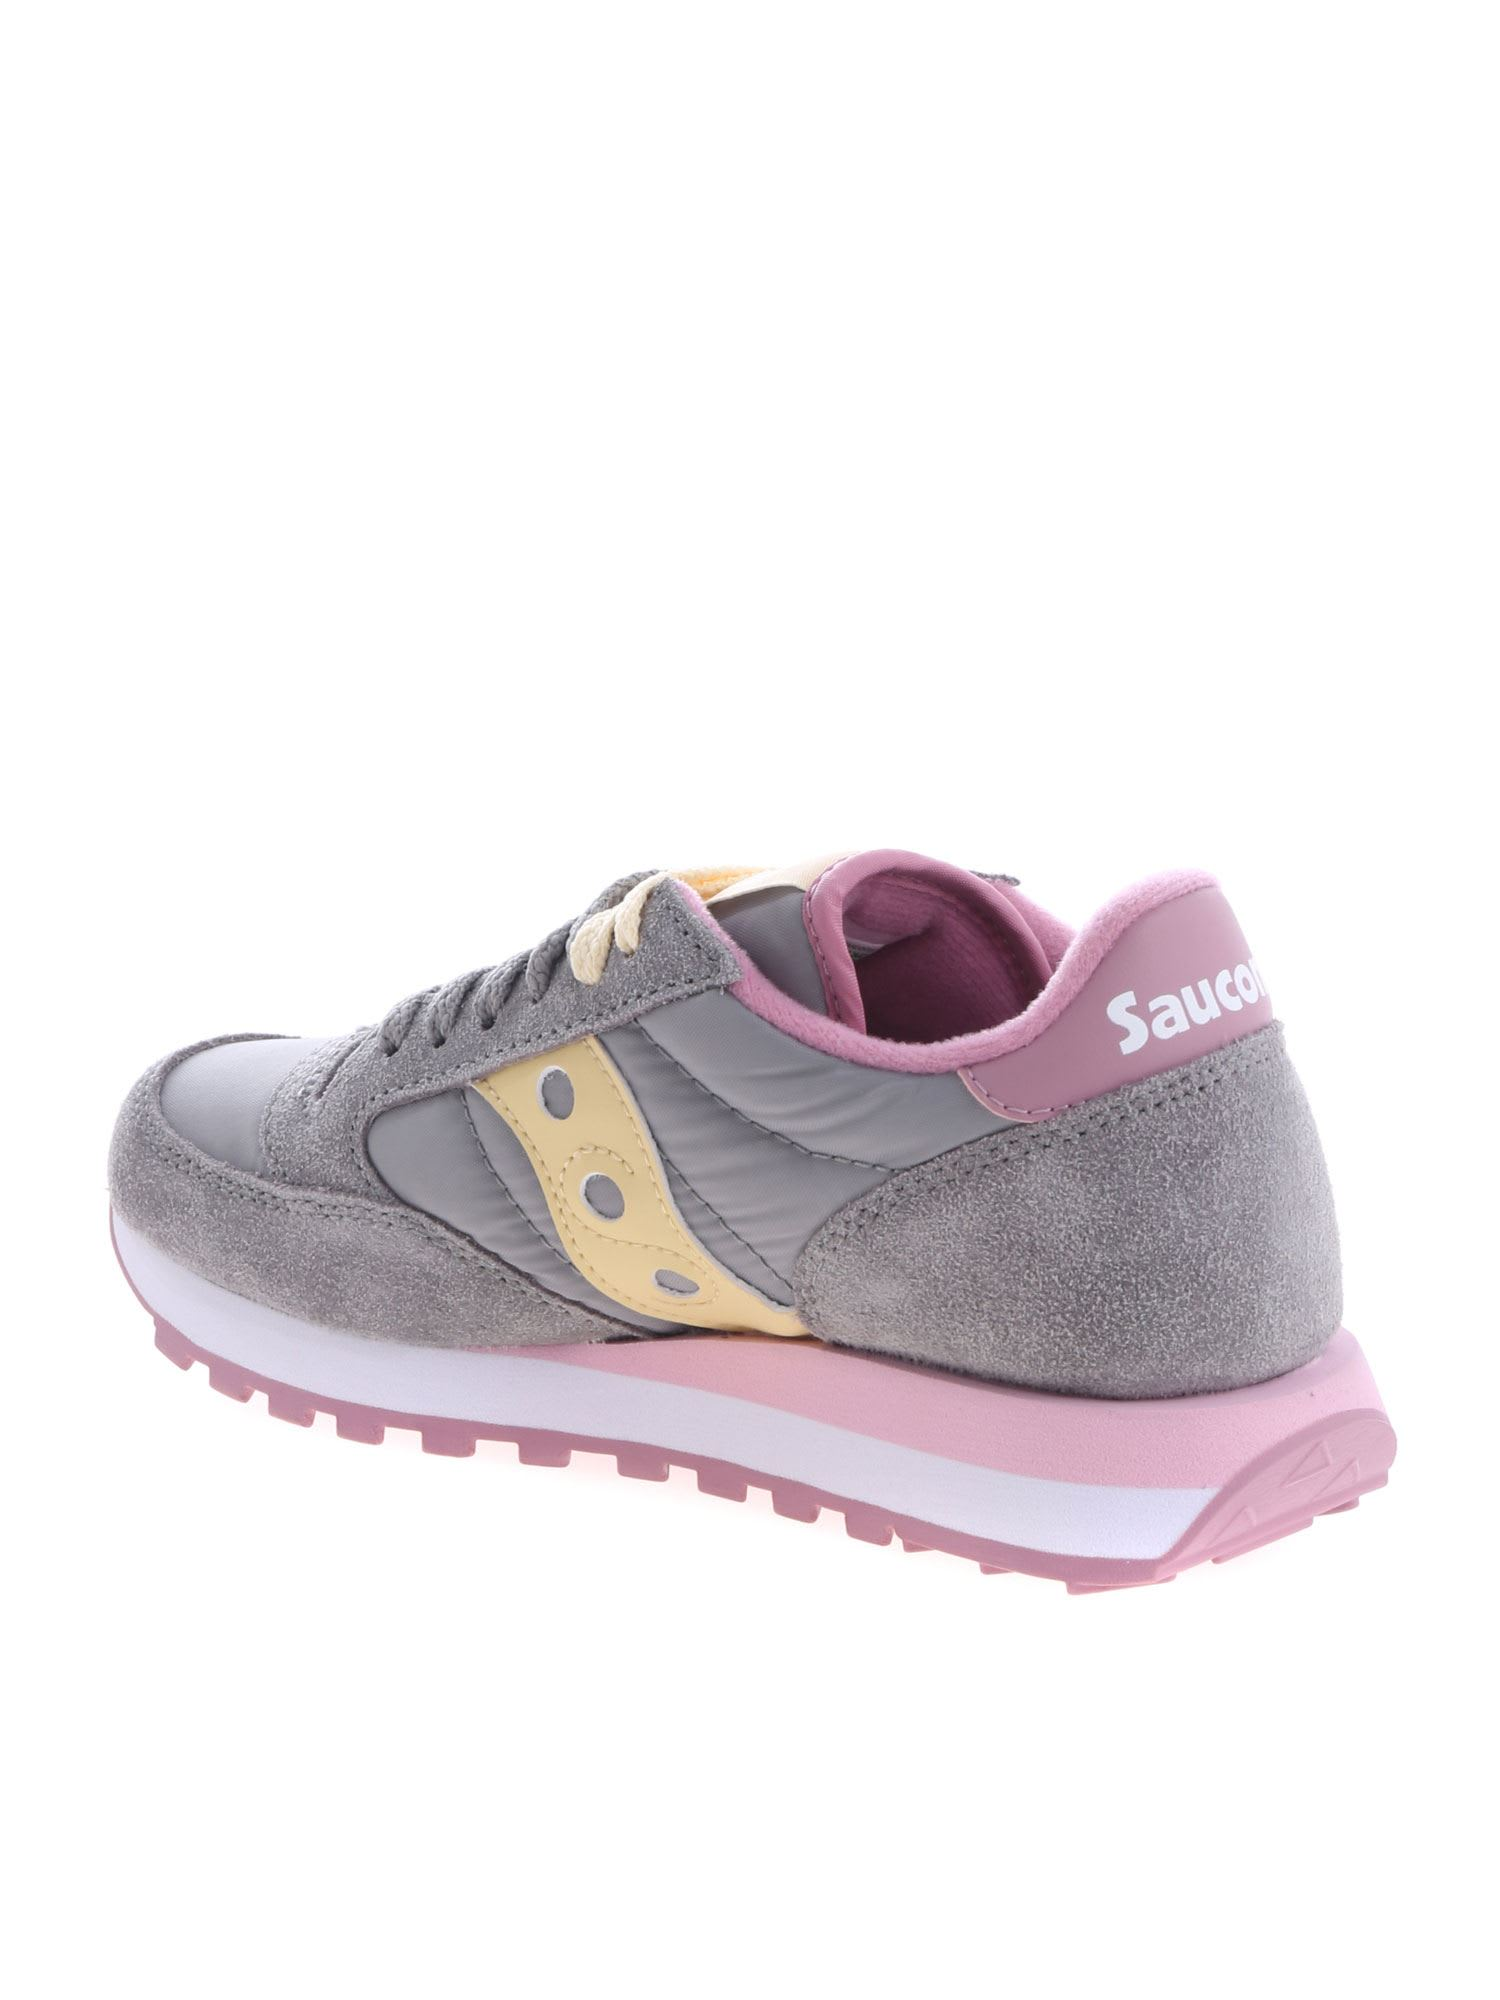 timeless design e9086 17e3b Saucony Saucony Jazz Original Sneakers - Grey/Pink ...